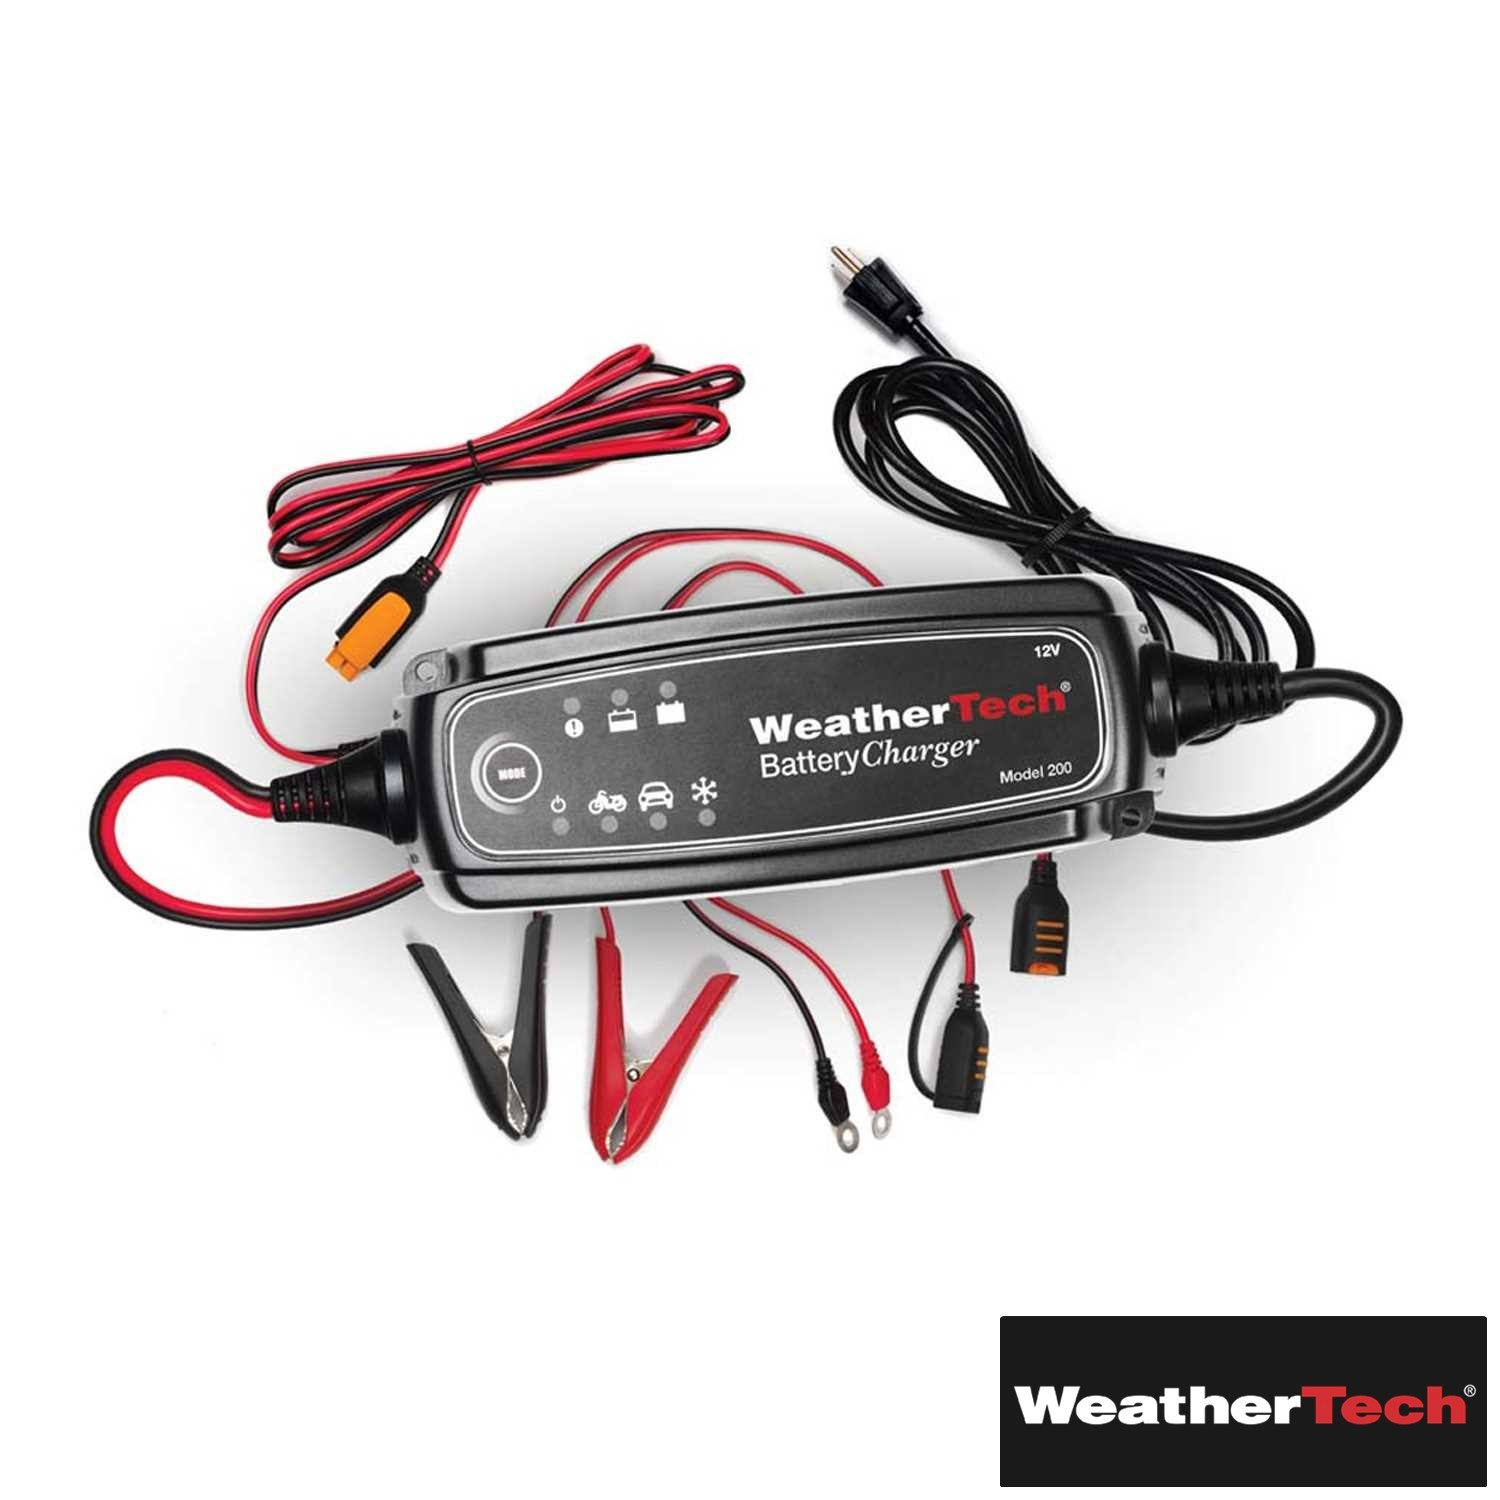 Weathertech (WEA129995-HR) Battery Charger 4 Amp 12V/16V Switchable - fits Non-Spec Vehicle - ALL | ALL